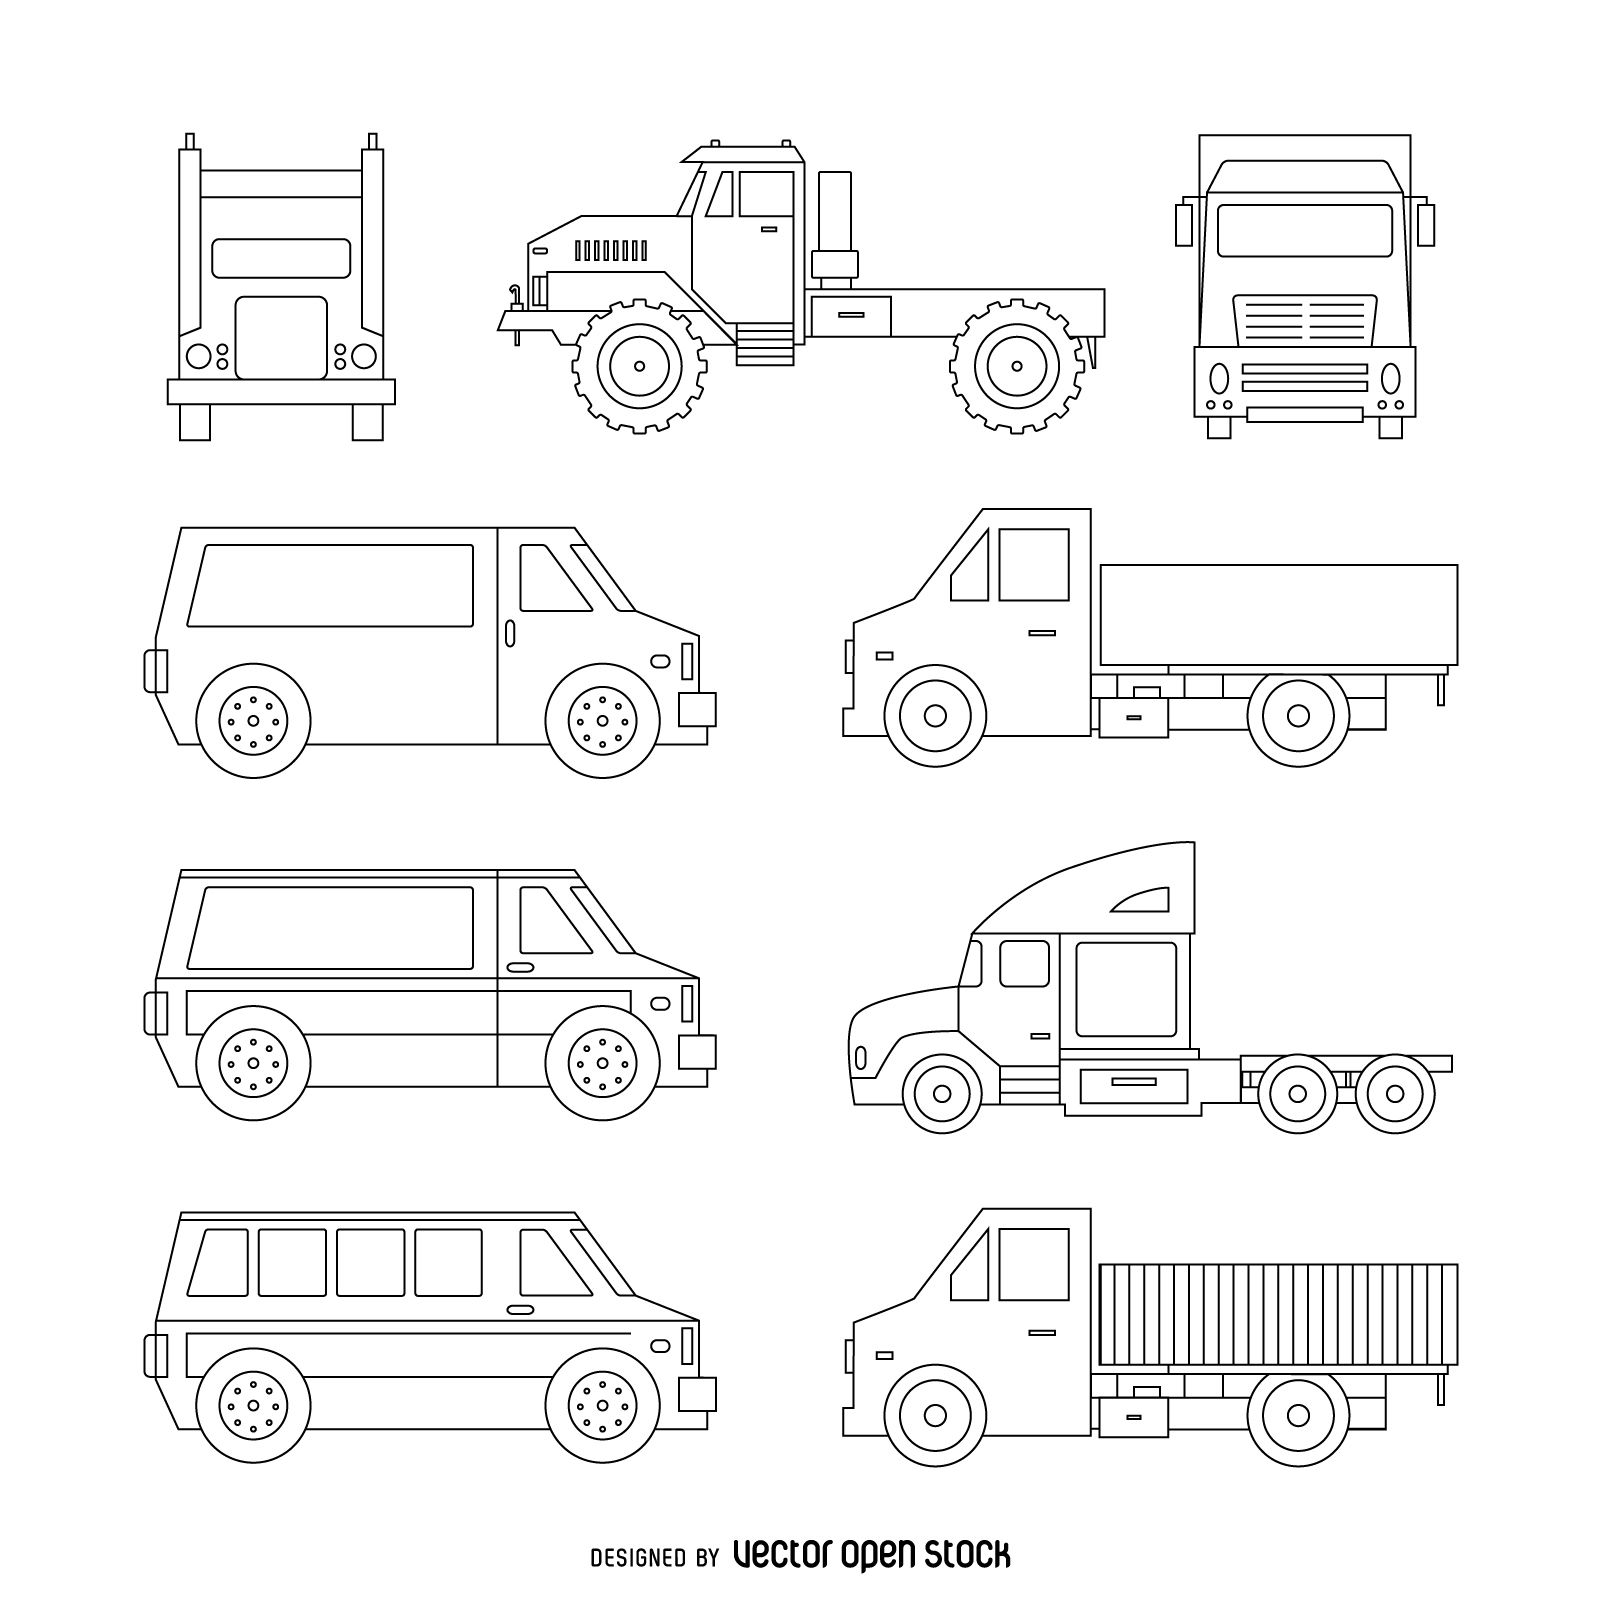 Set of truck illustrations featuring different types of trucks and vehicles. Isolated outline designs in black lines.